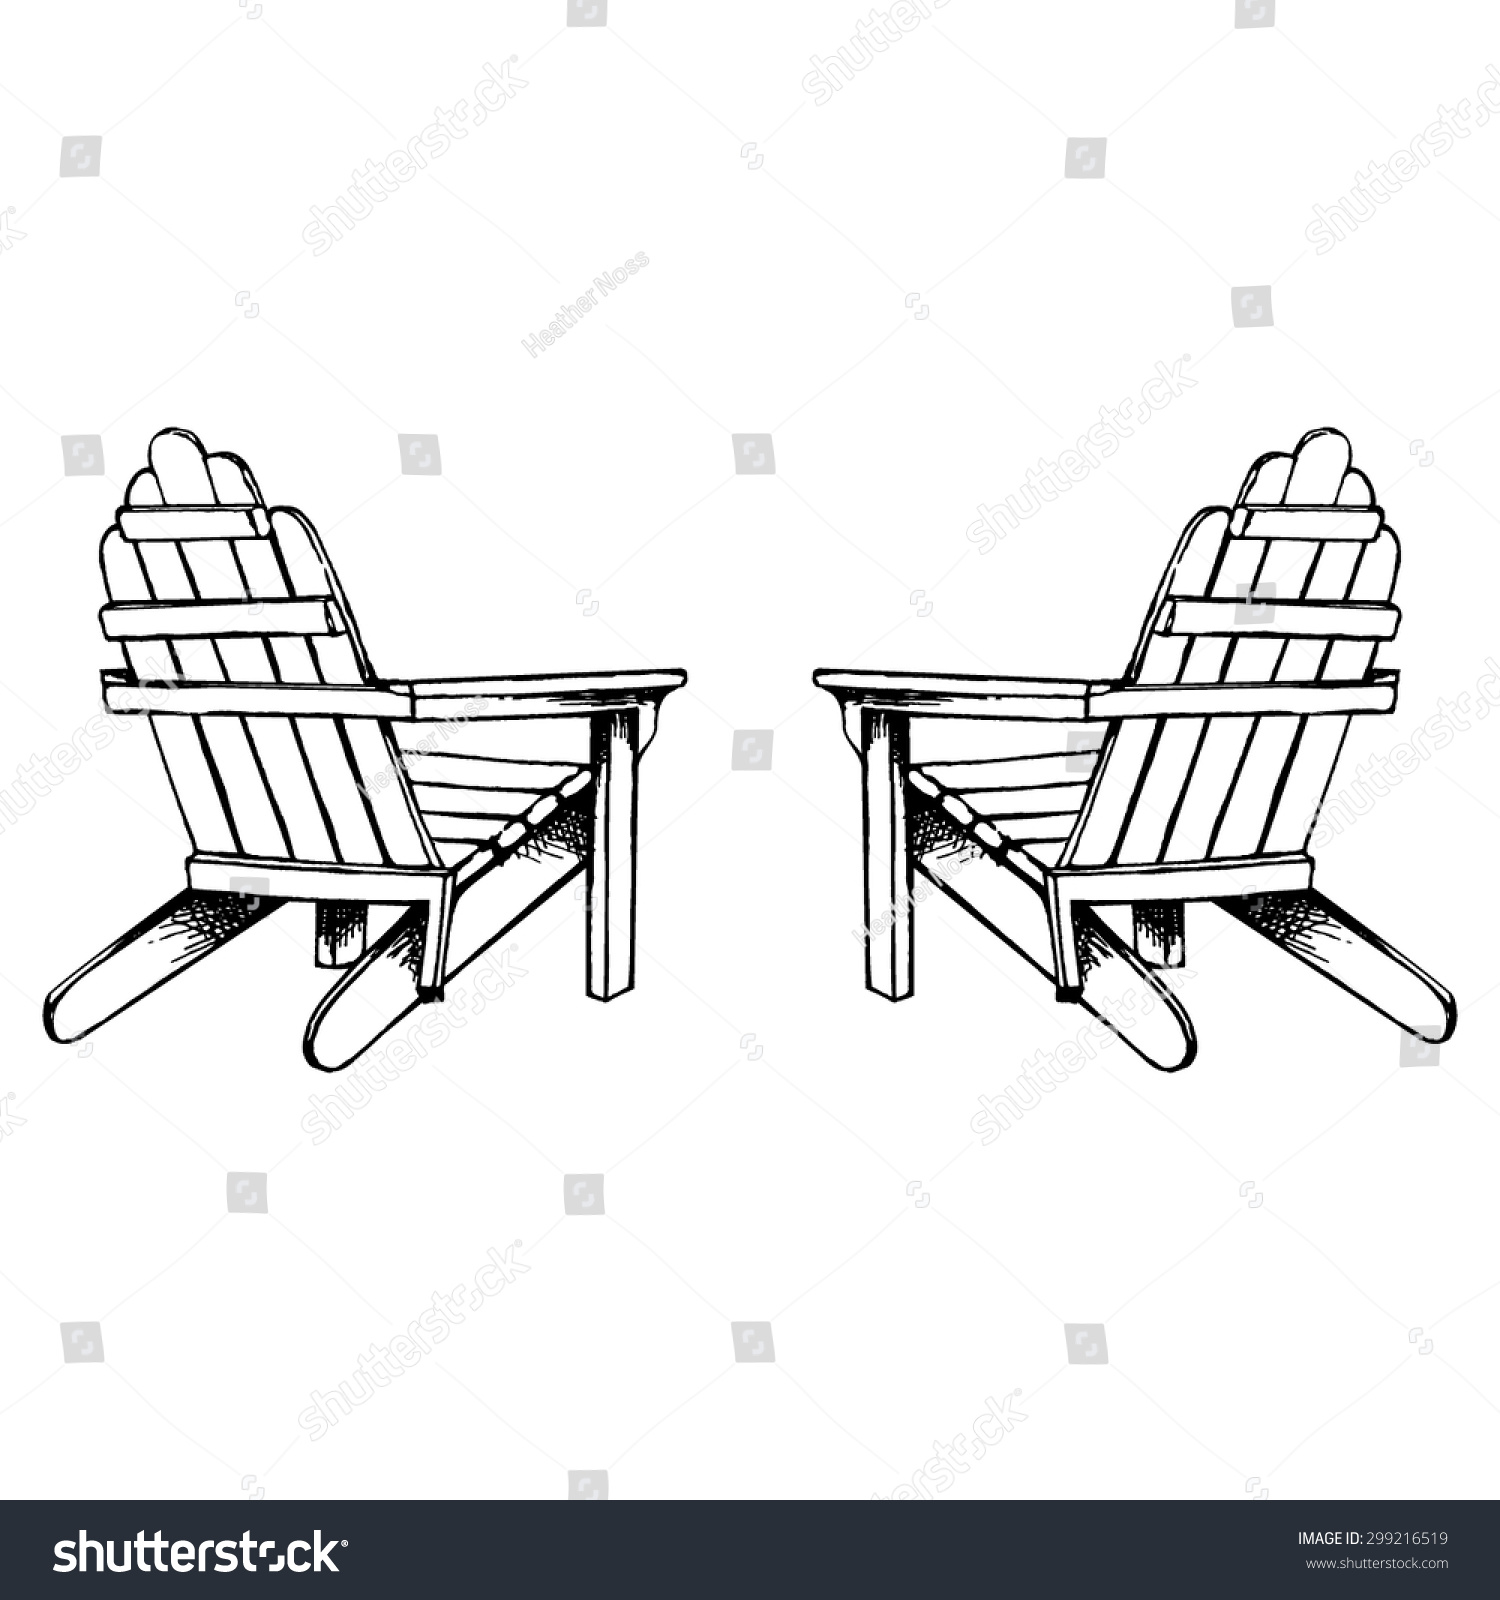 Adirondack chairs clipart graphic freeuse stock Adirondack Chairs Hand Sketch Stock Vector 299216519 Log Adirondack ... graphic freeuse stock